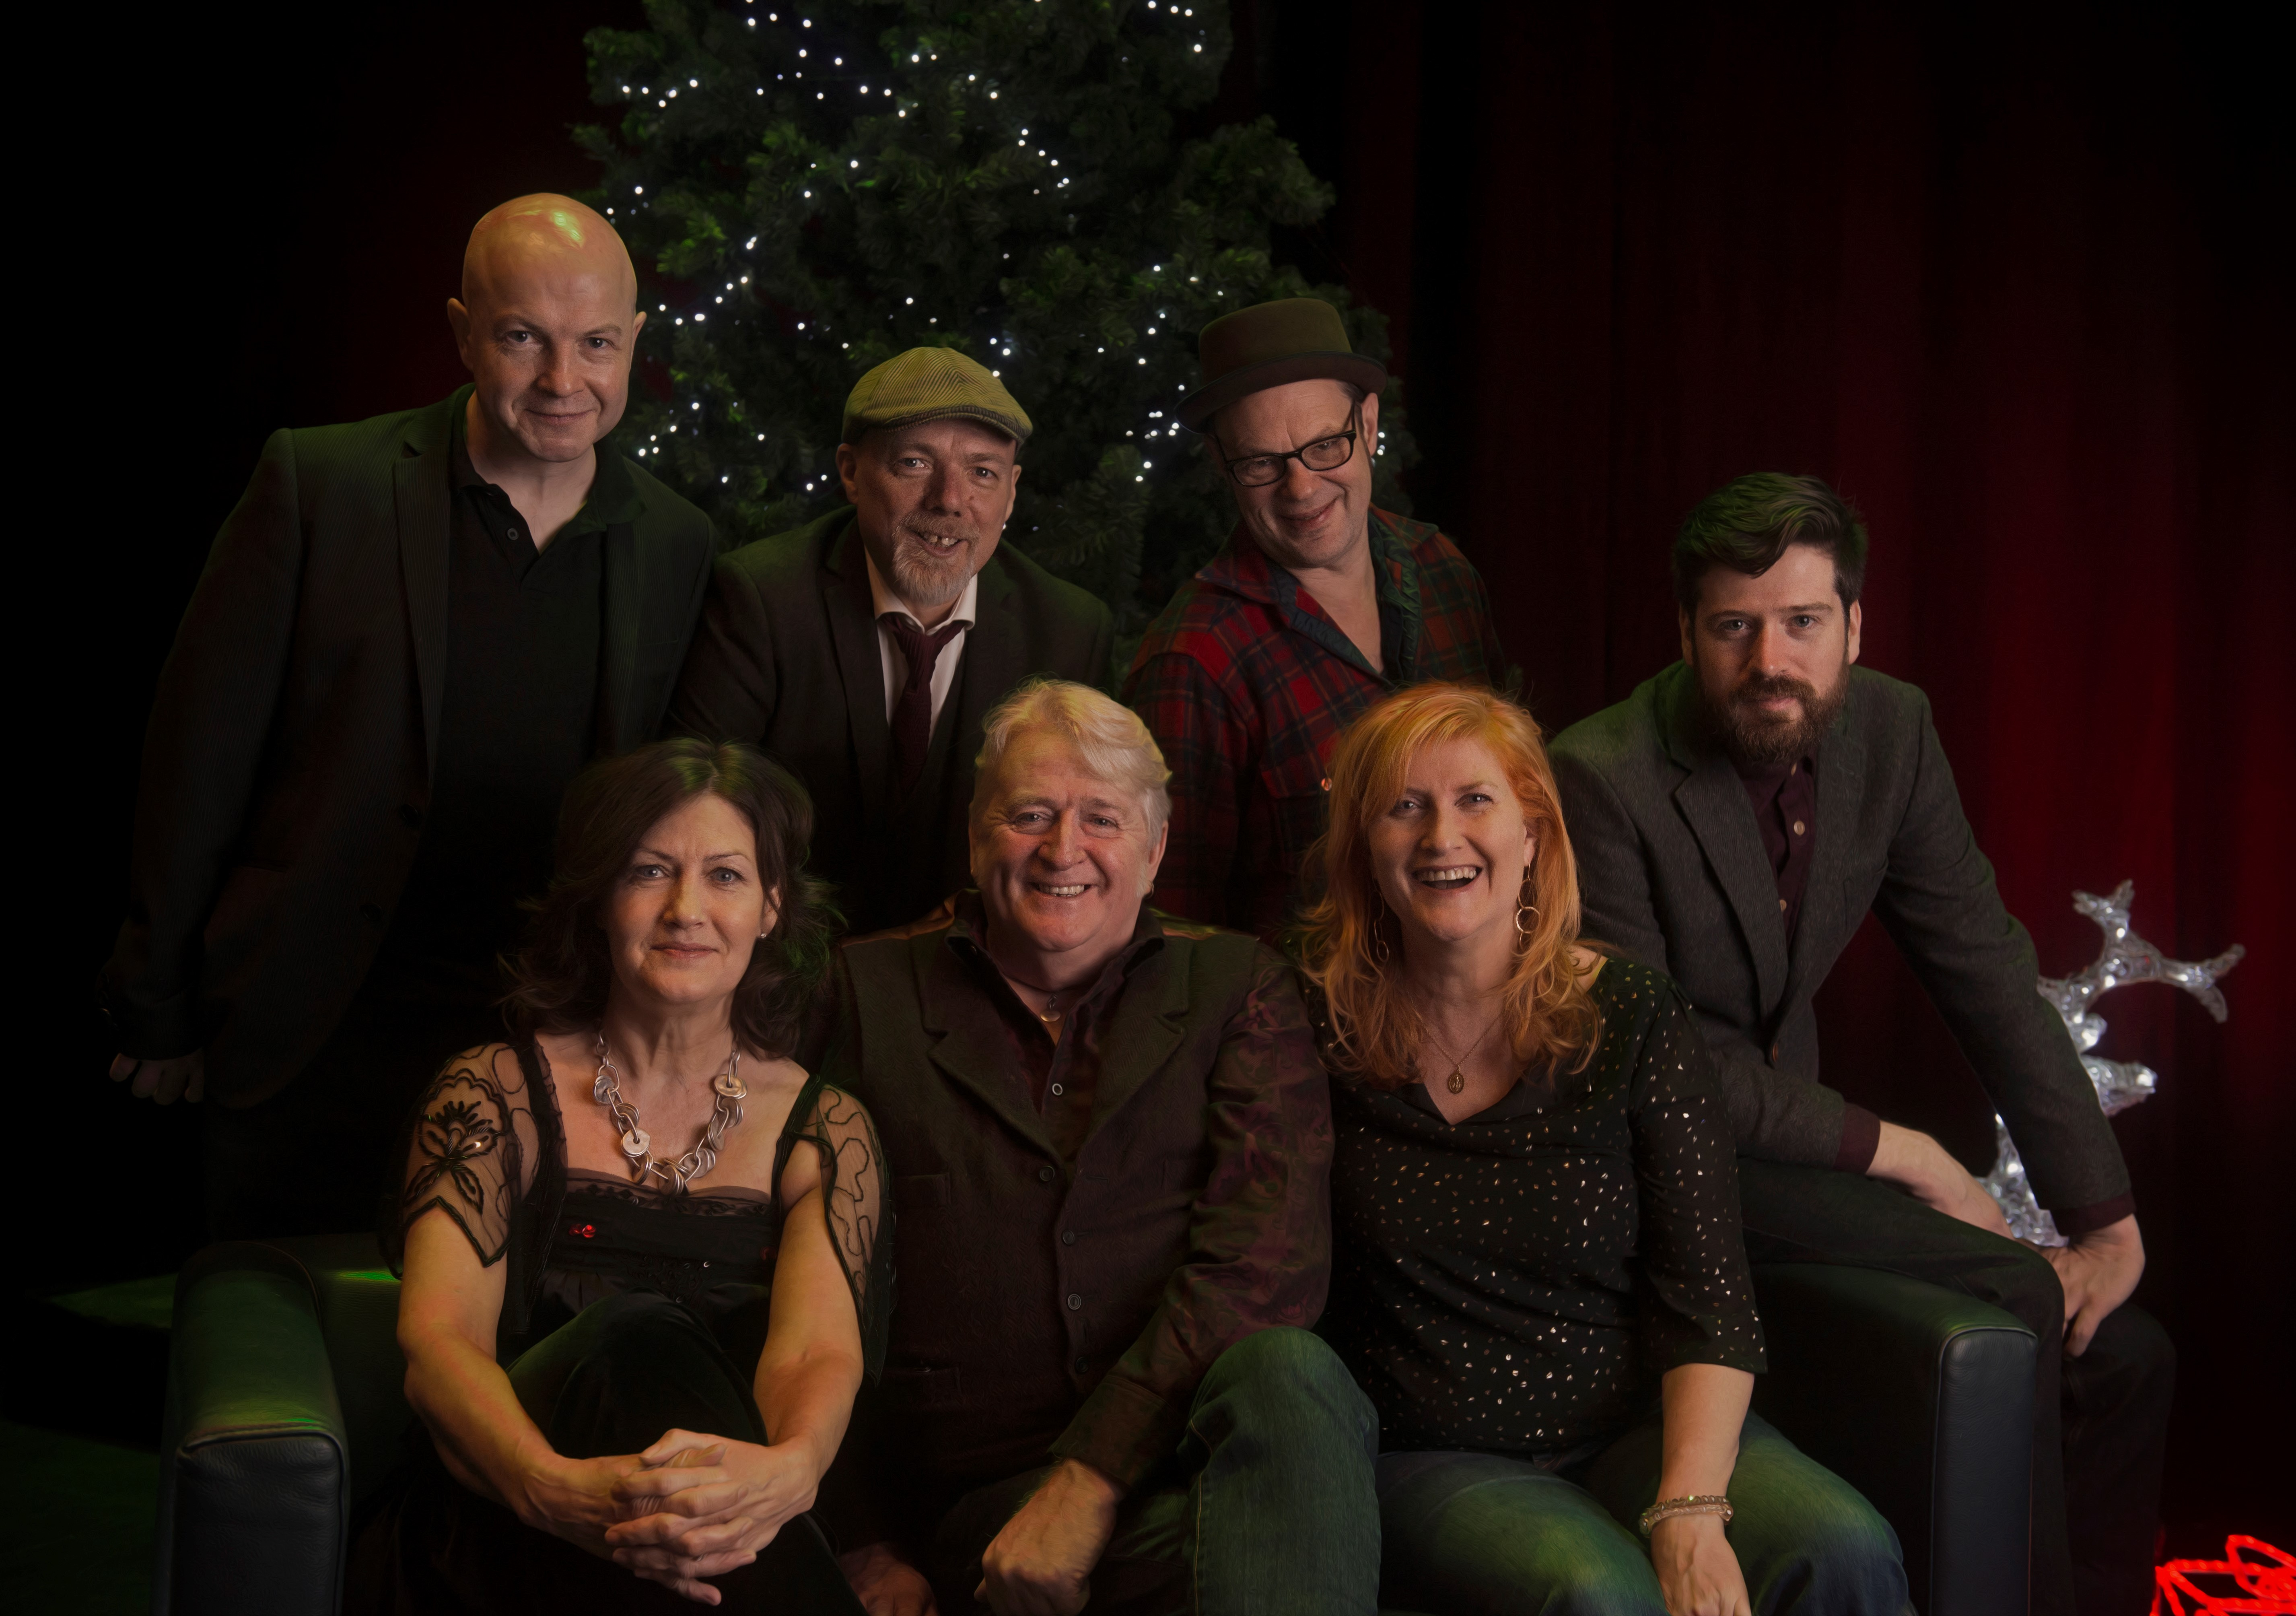 Phil Cunningham, centre, with familiar pals joining his Christmas songbook tour